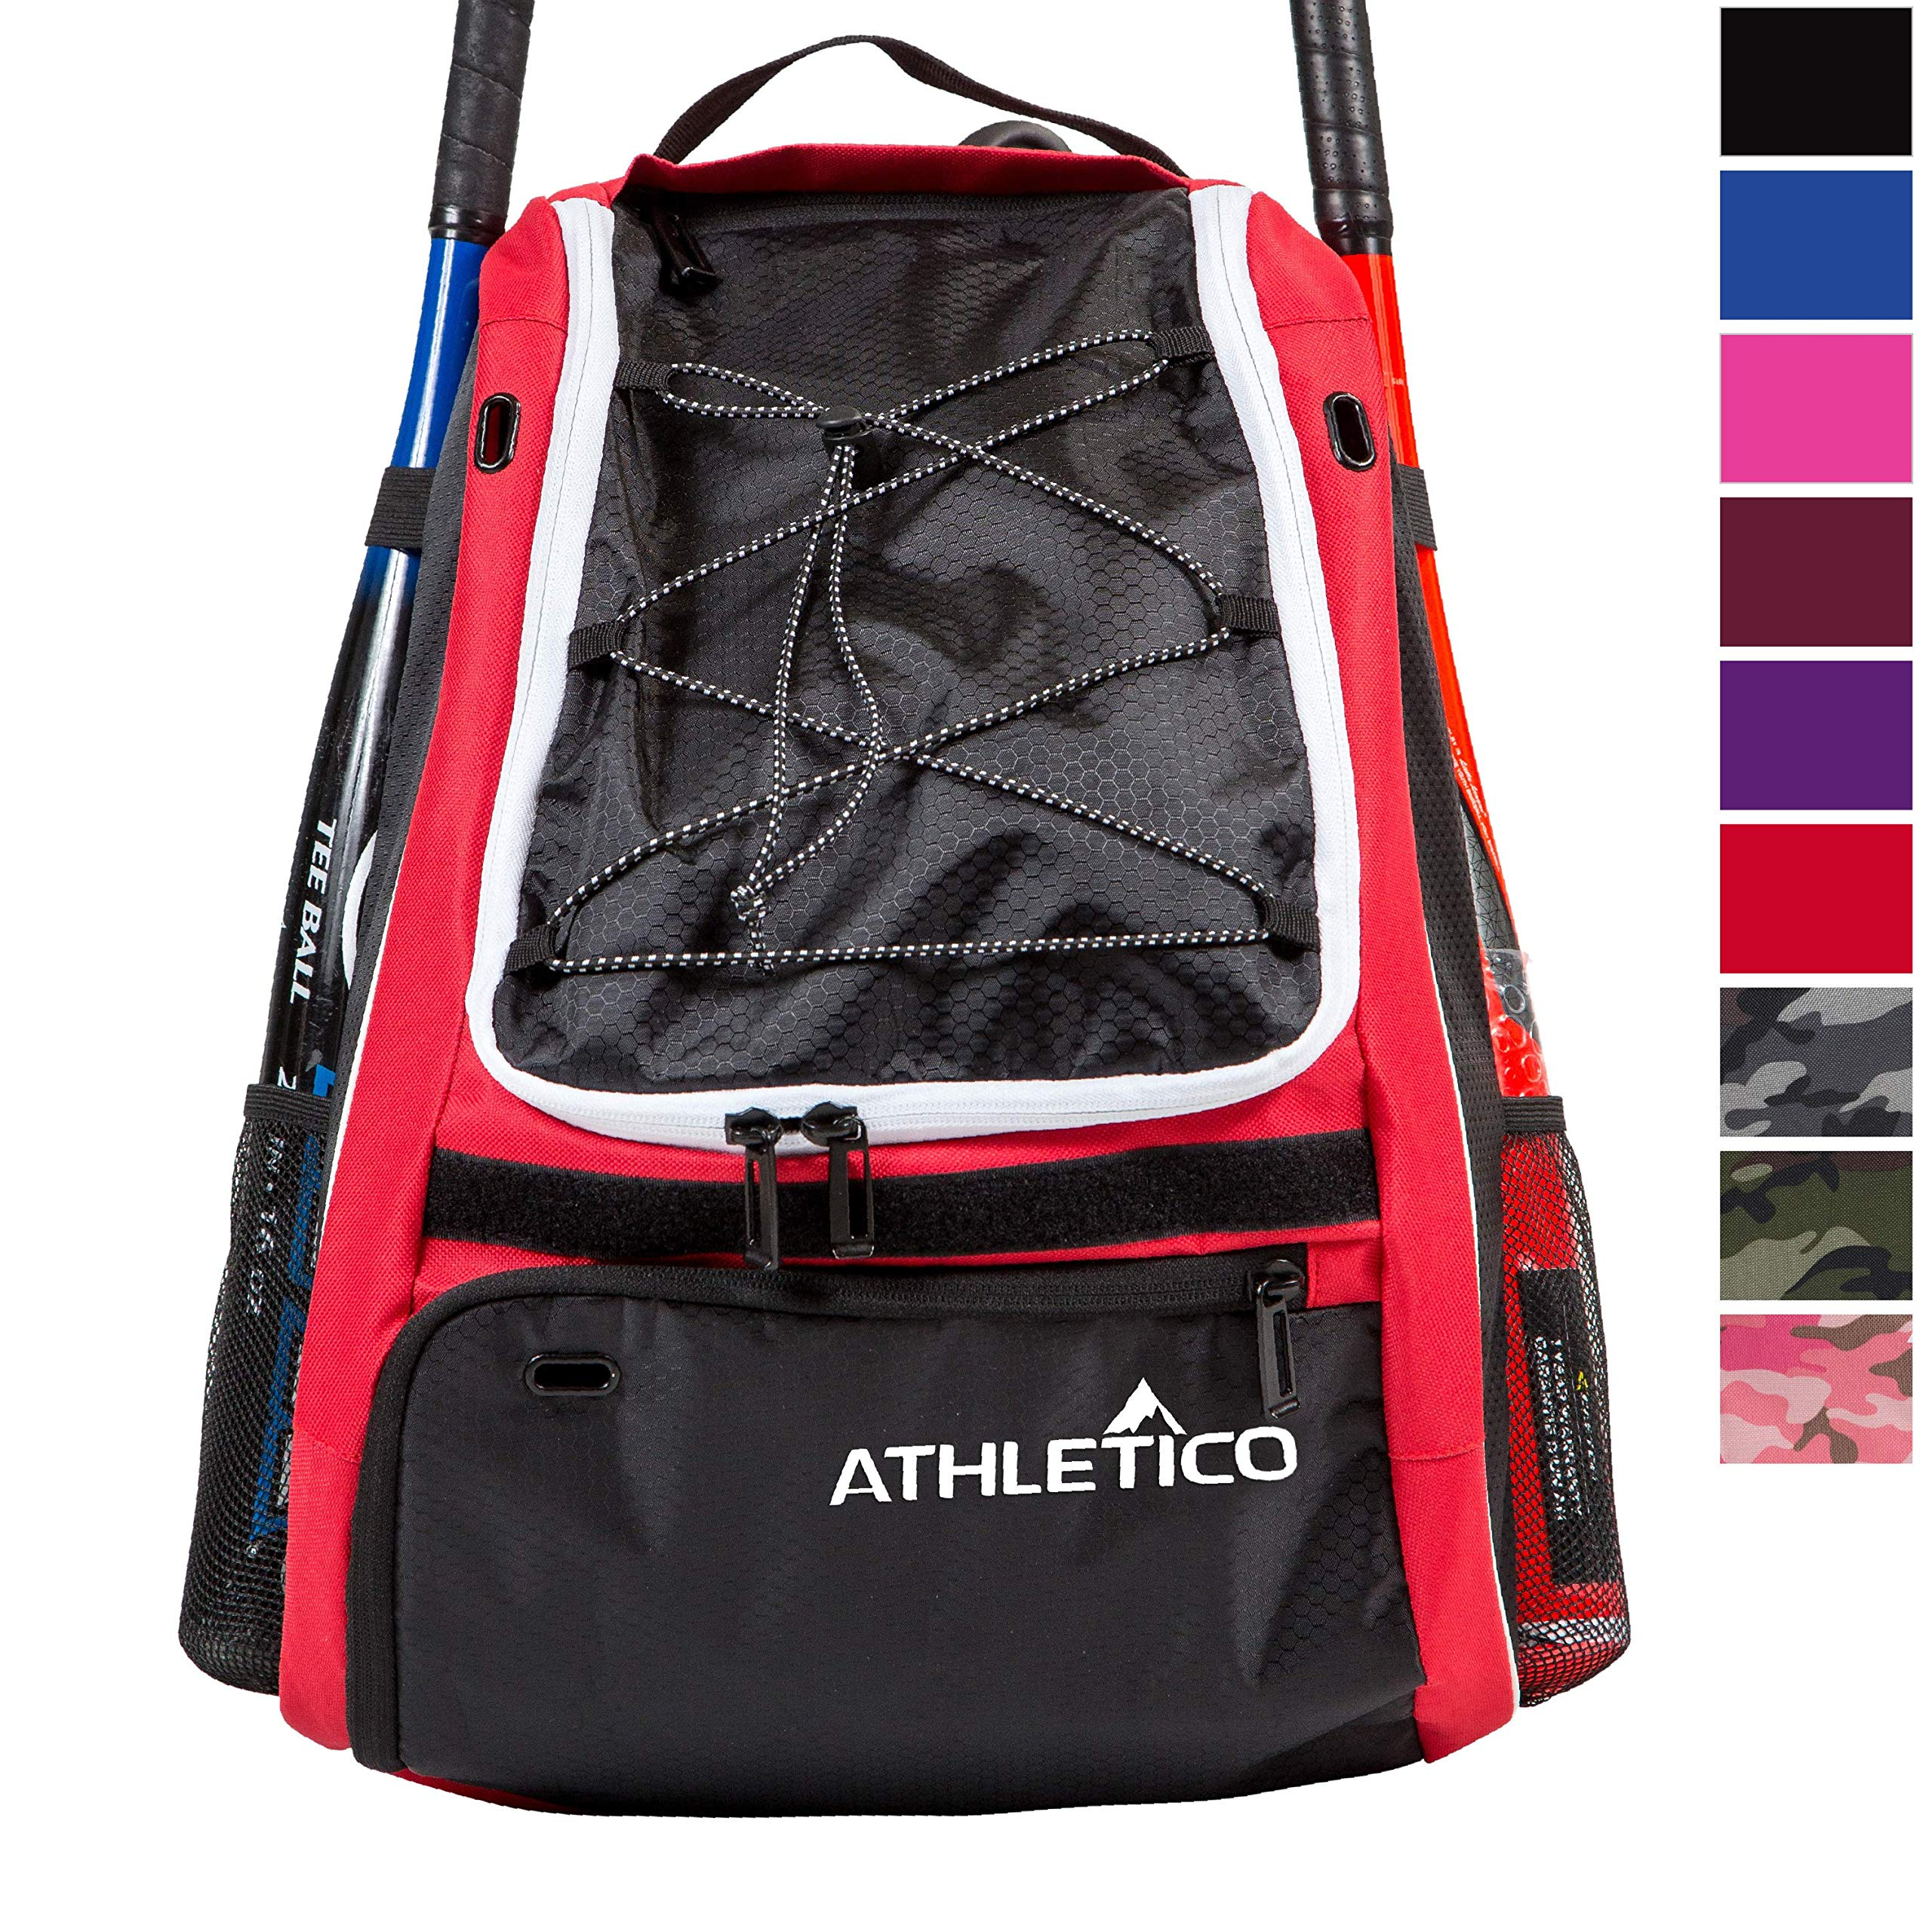 Athletico Baseball Bat Bag - Backpack for Baseball, T-Ball & Softball Equipment & Gear for Youth and Adults | Holds Bat, Helmet, Glove, Shoes |Shoe Compartment & Fence Hook (Red) by Athletico